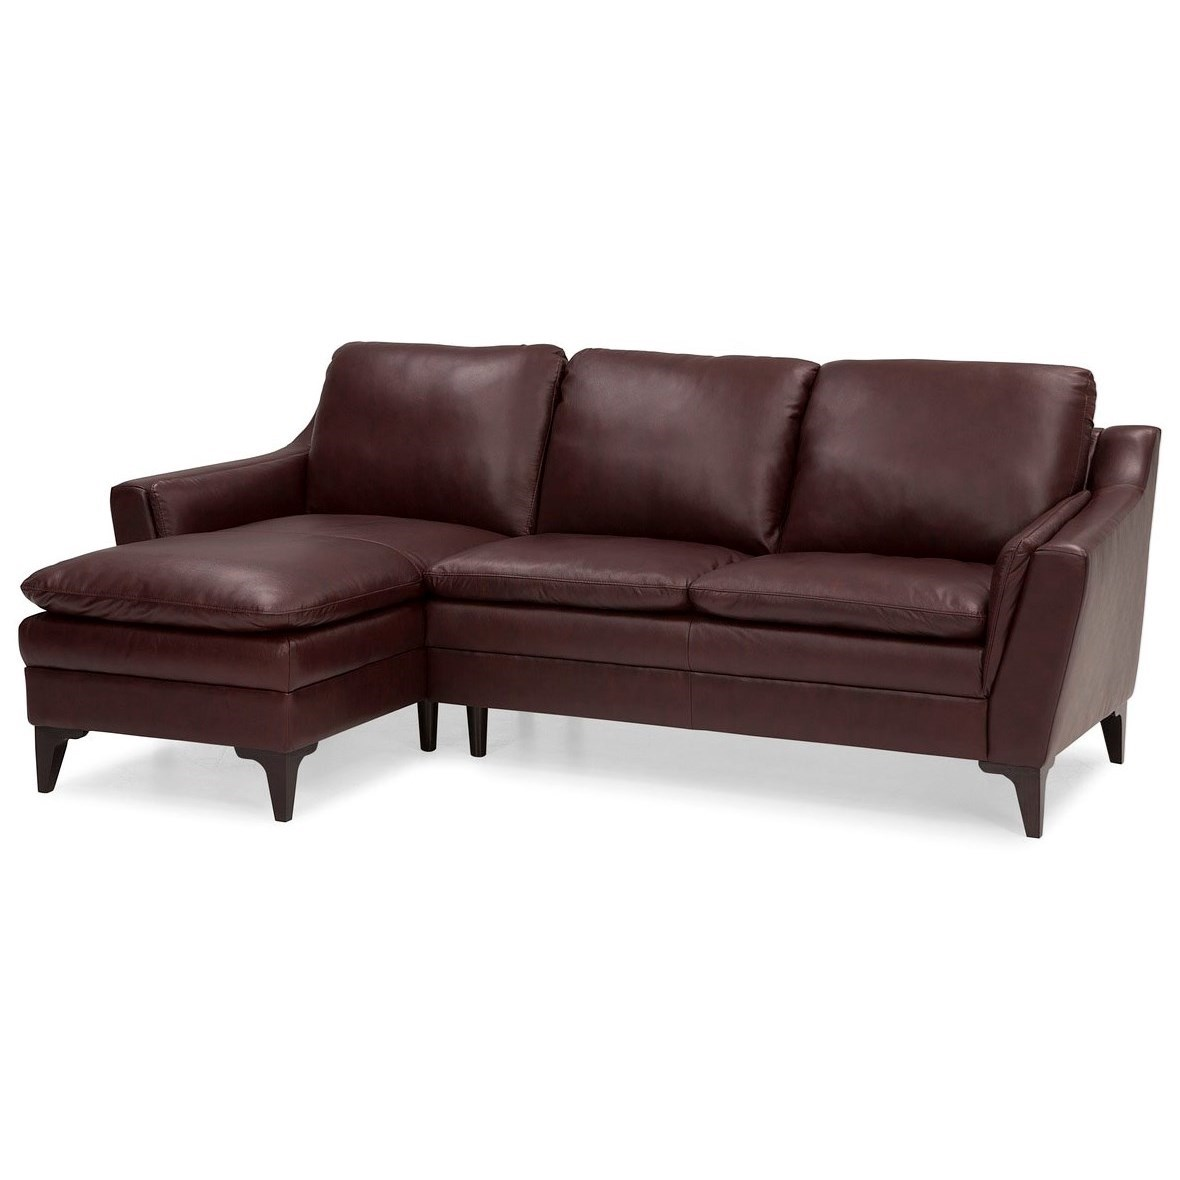 Palliser Balmoral Contemporary 2 Piece Sectional With Left